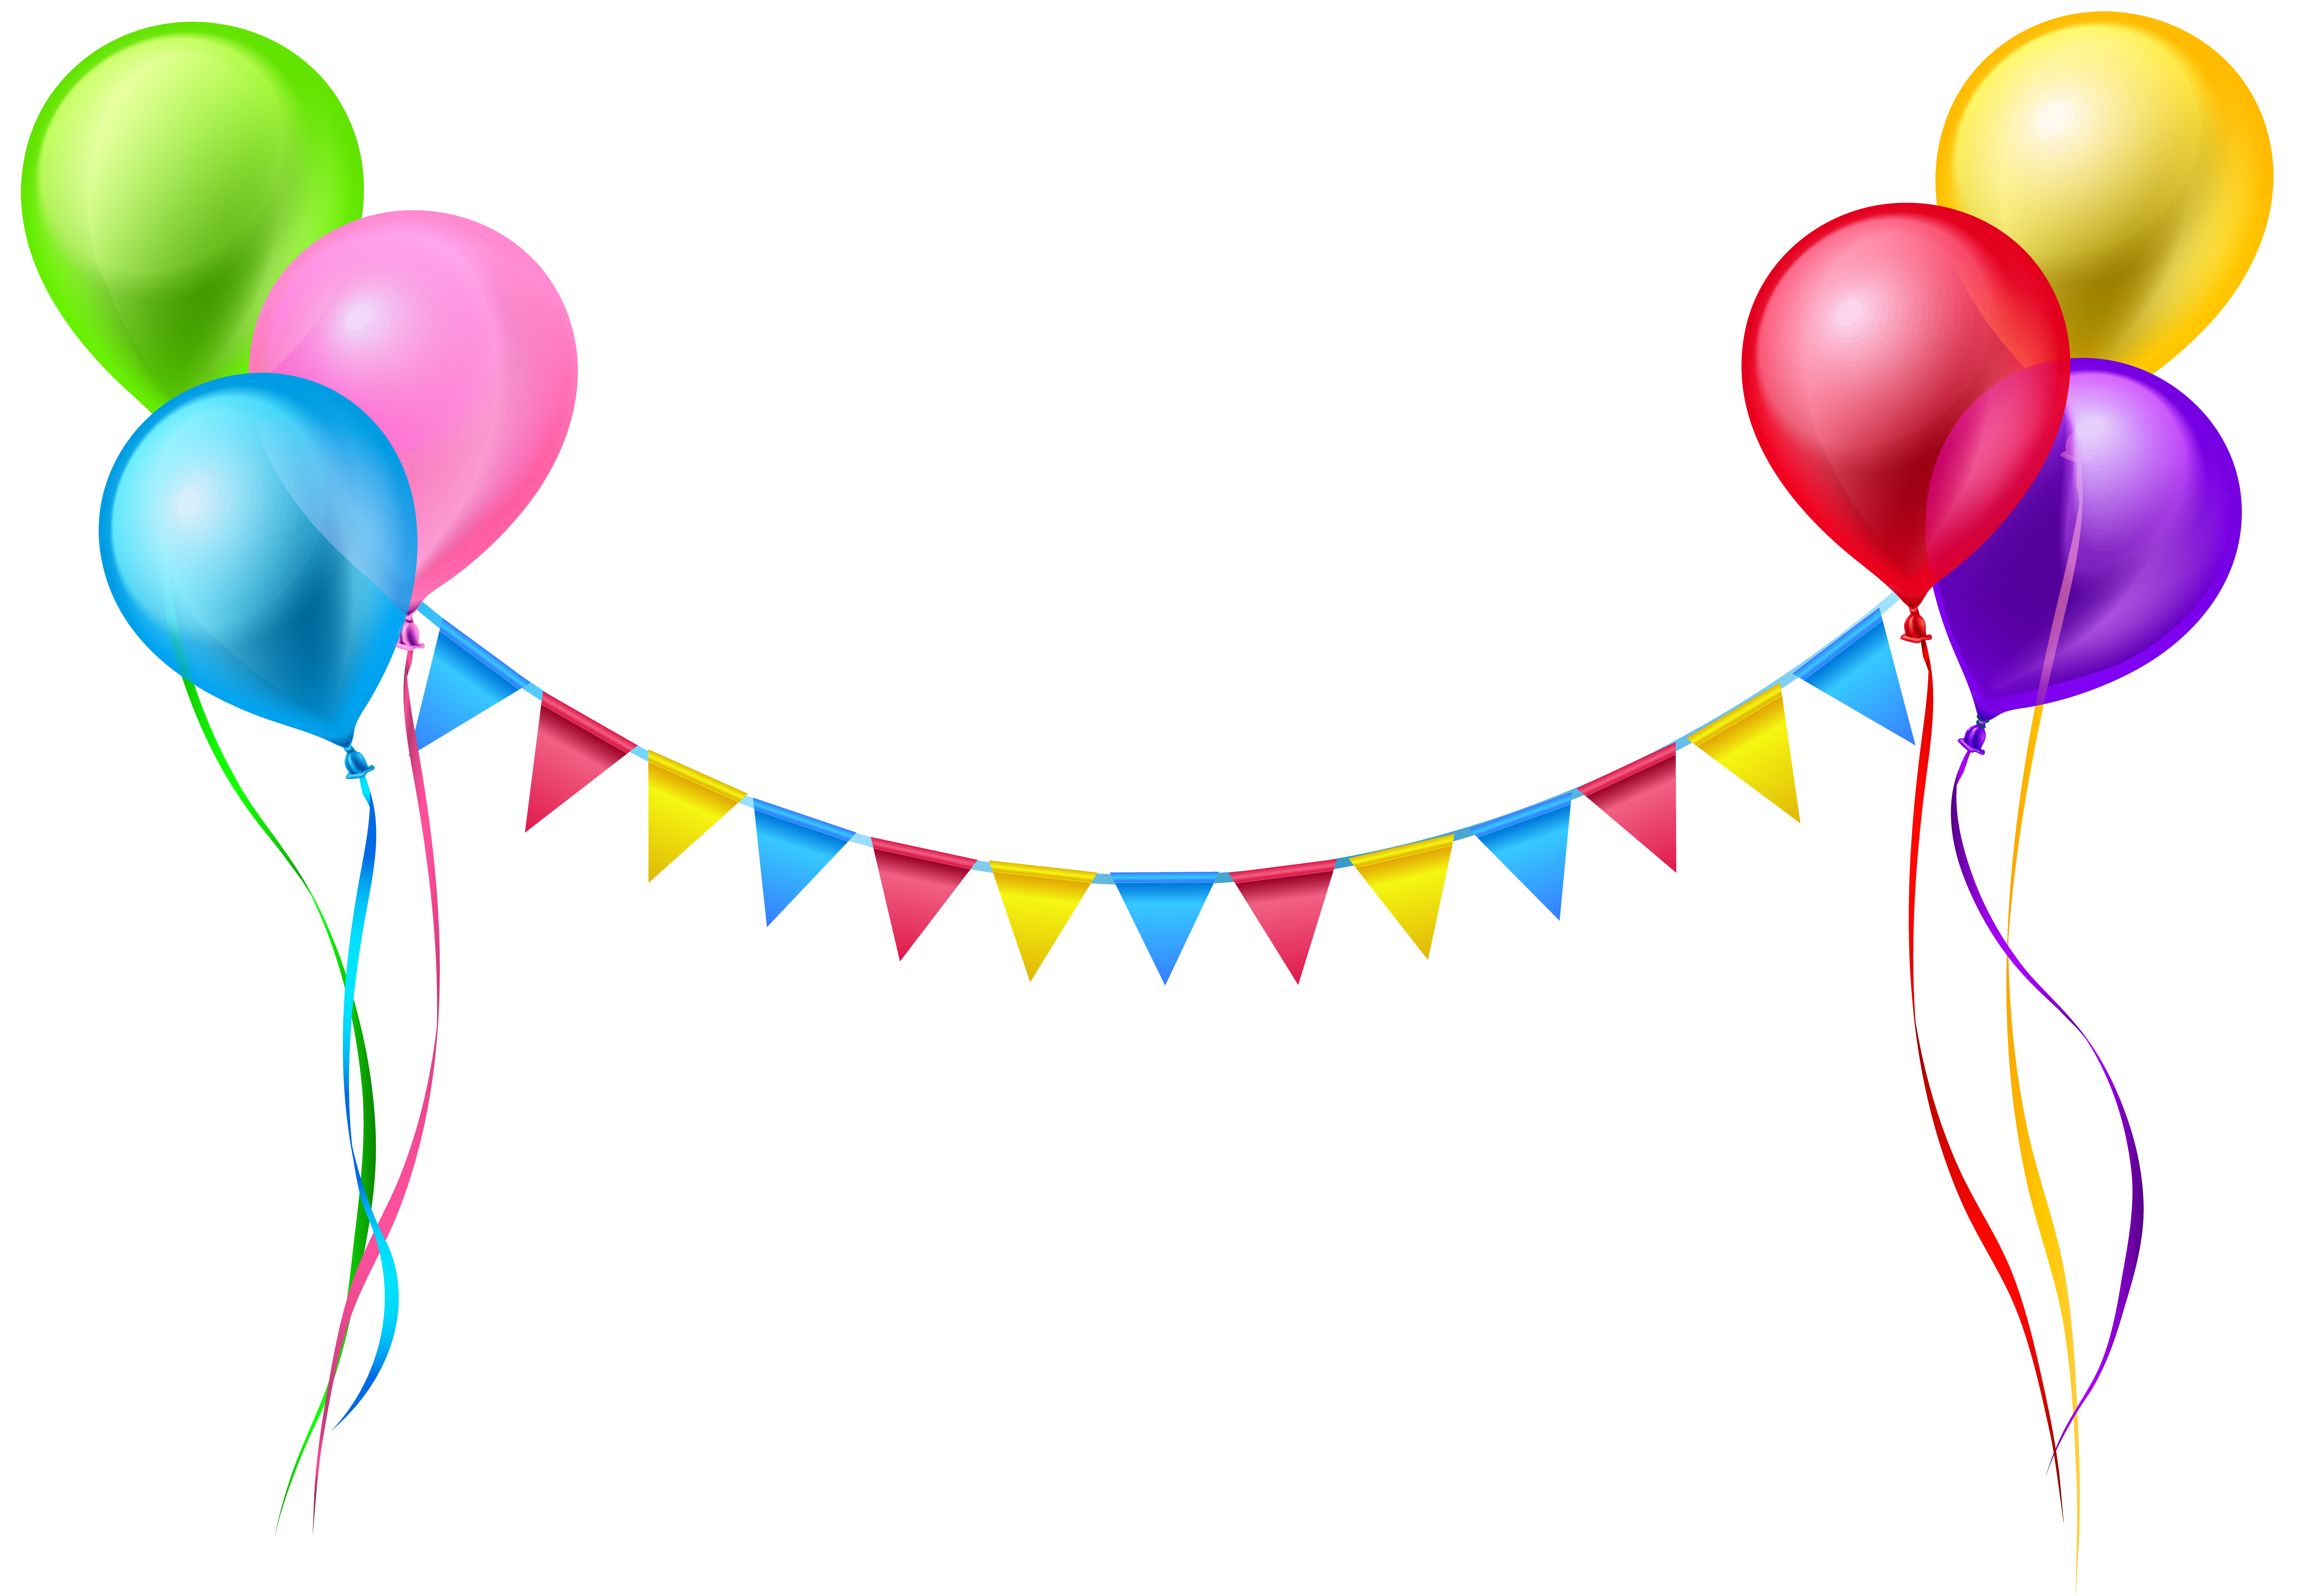 Streamer and Balloons PNG Clip Art Image Happy birthday